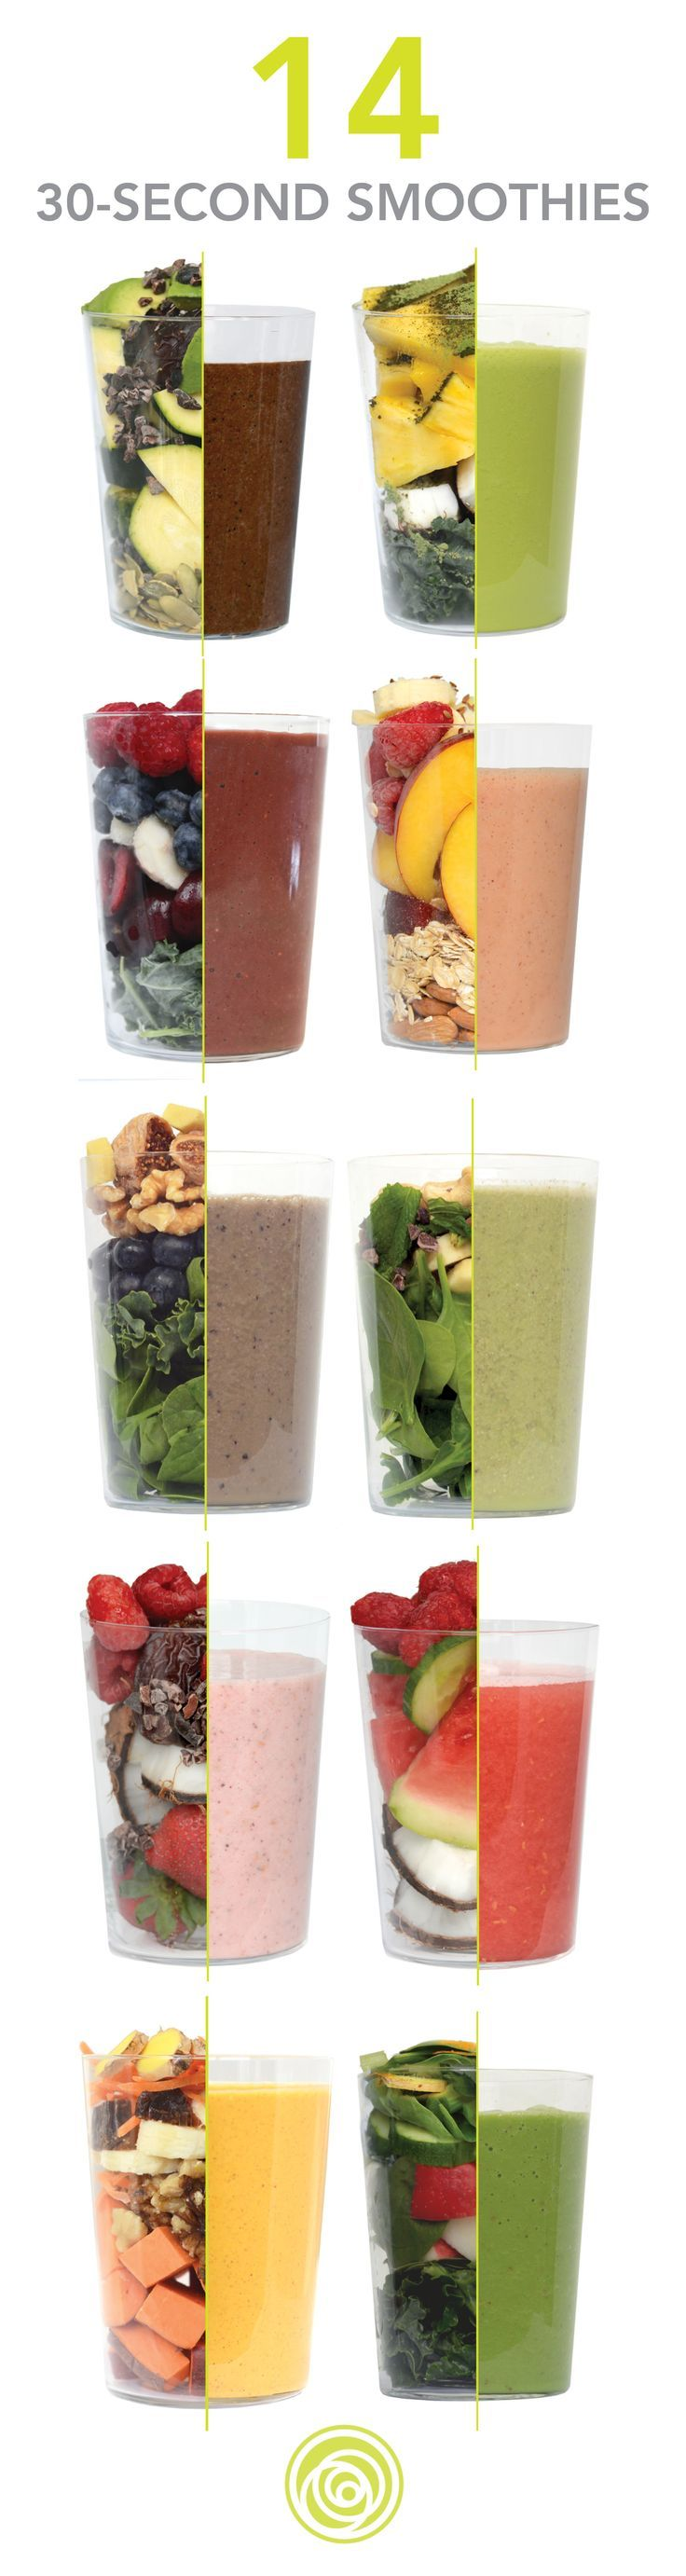 Ready-to-blend frozen smoothies delivered to your door. 14 flavors or raw, whole, real ingredients and superfoods. Just open, blend and enjoy. No prepping, no mess, no leftovers. Get 2 FREE blends with your first box!: